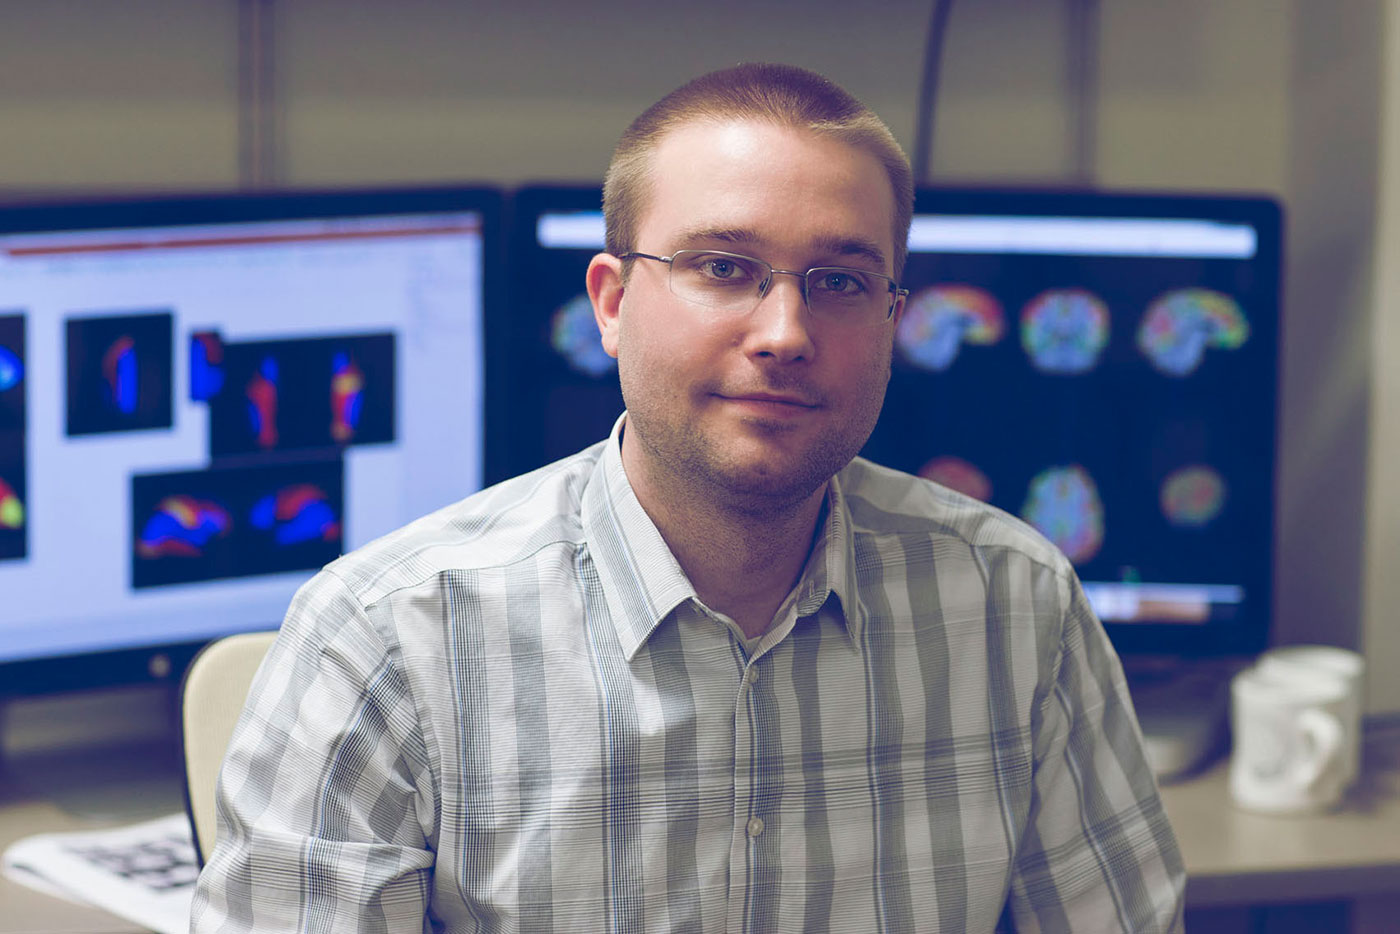 Using fMRI, neuroscience graduate student Bryson Reynolds is studying subconcussions experienced by college football players.